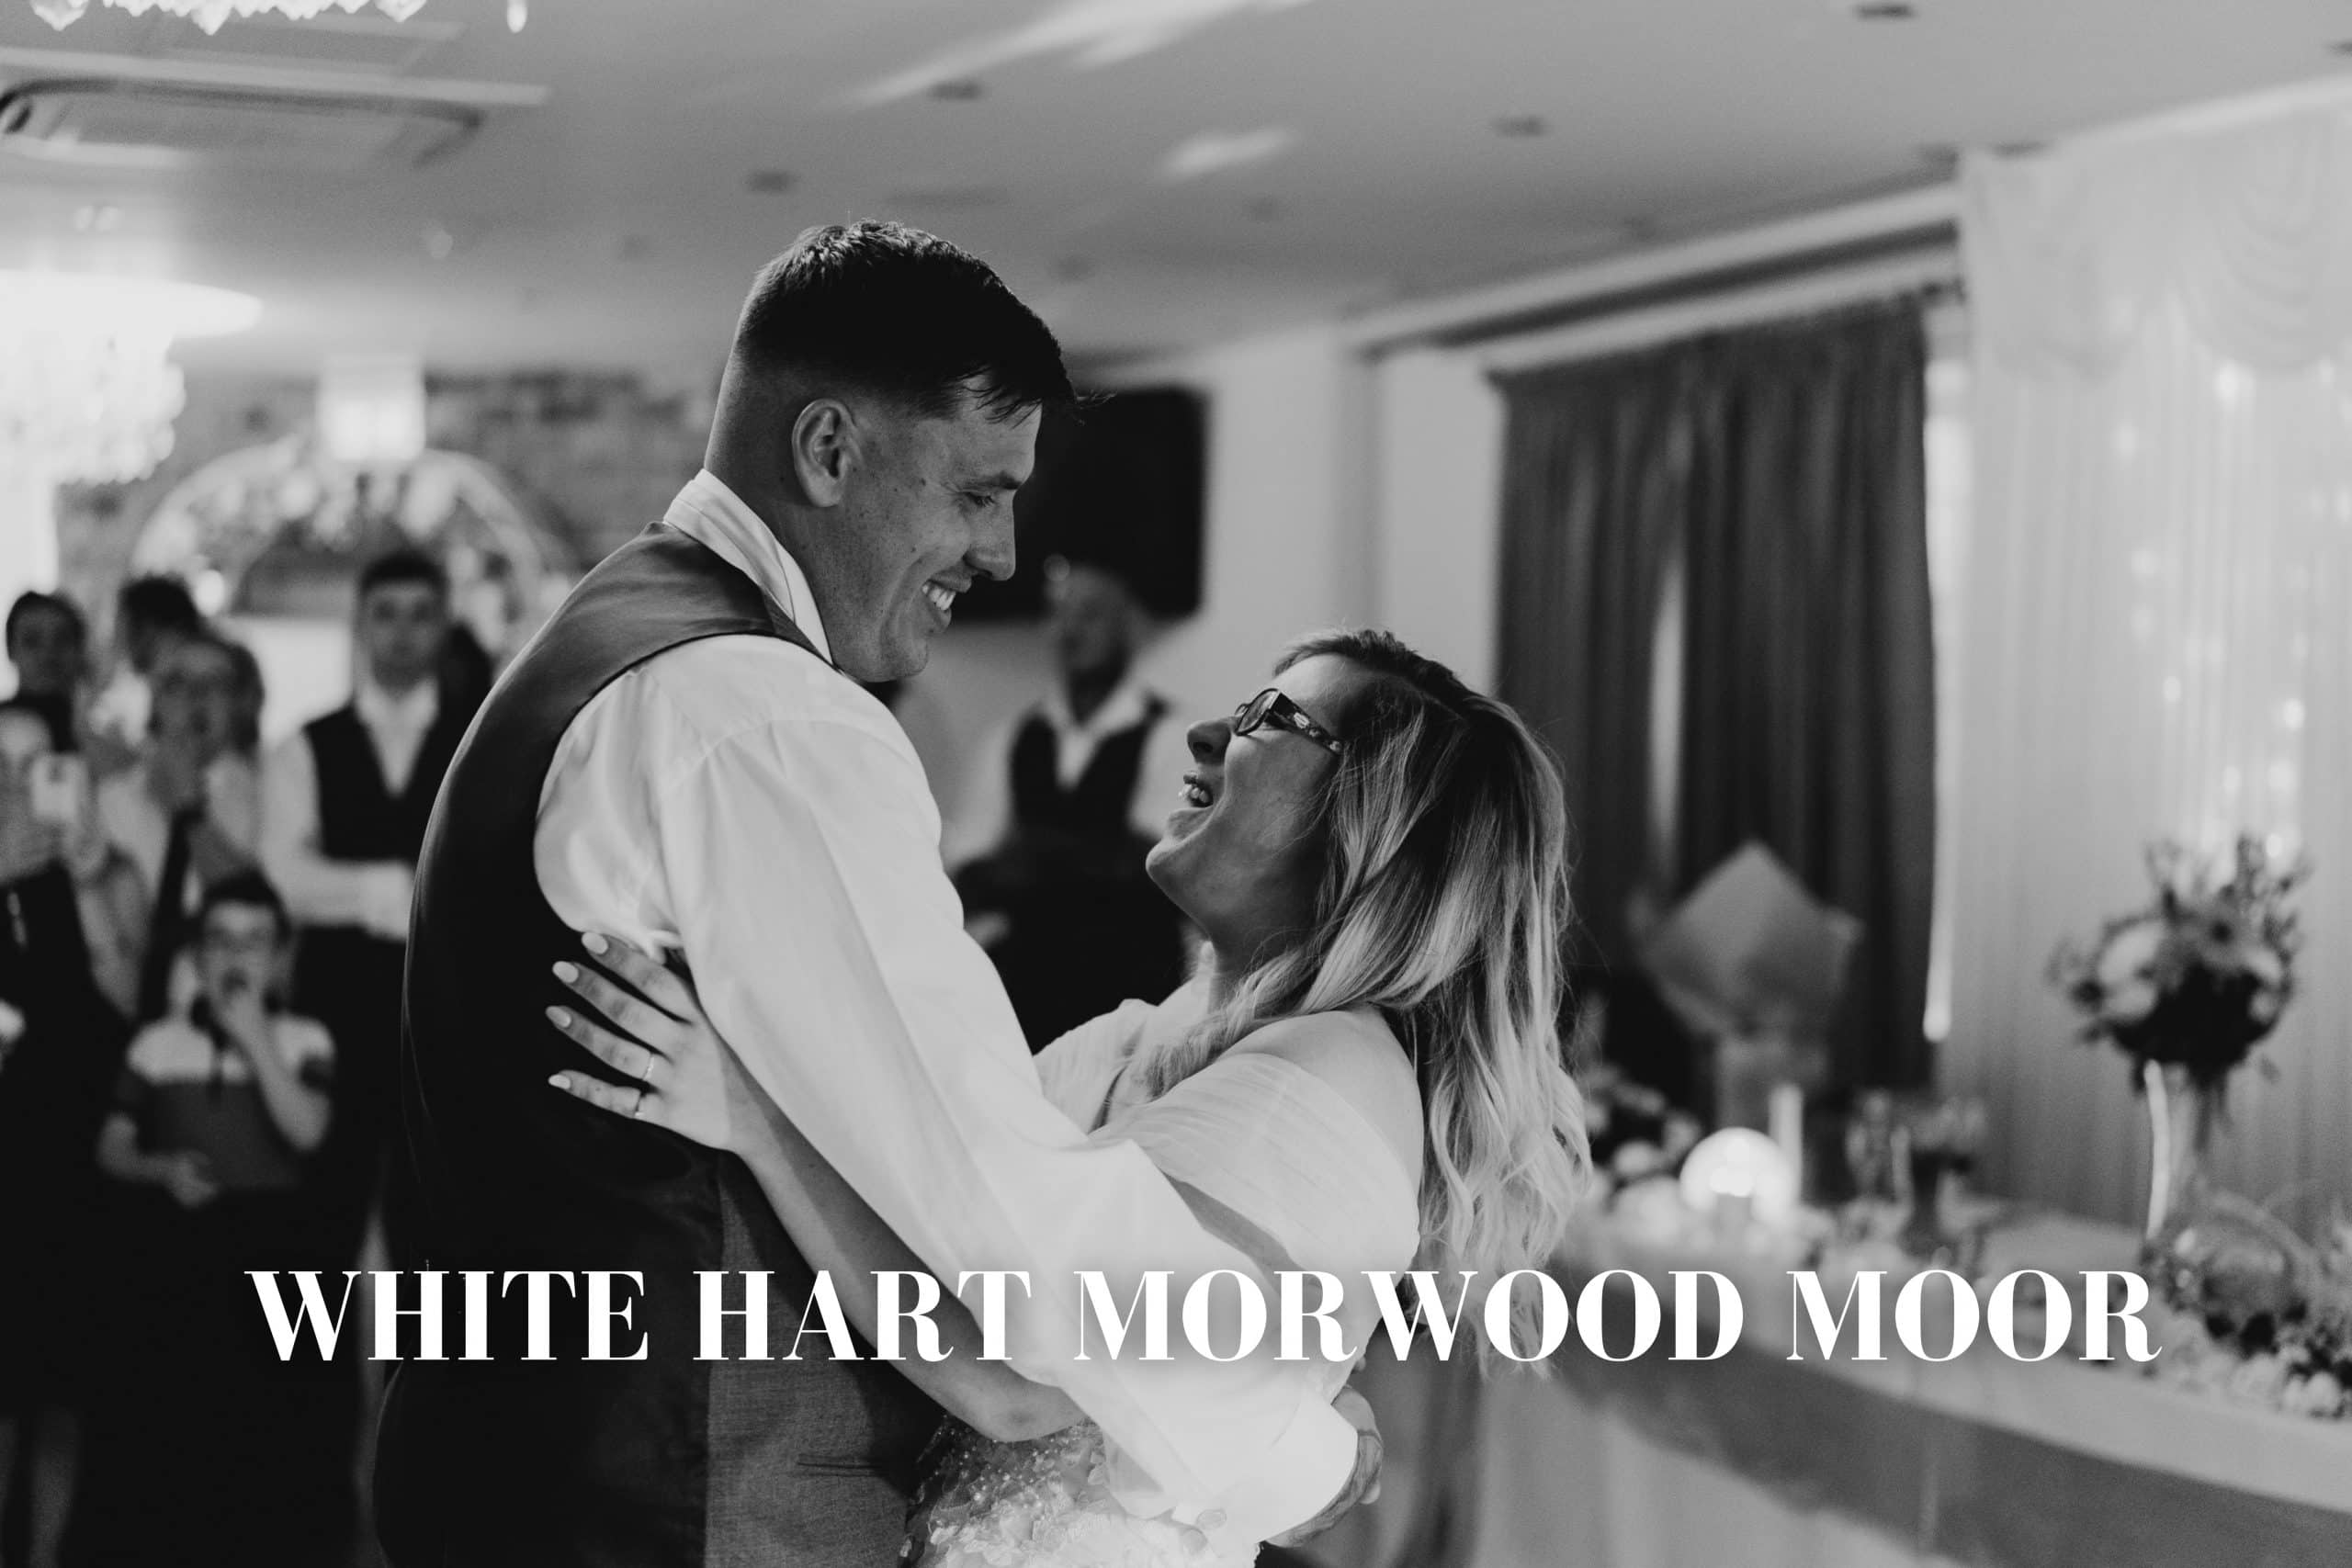 White Hart Inn at Moorwood Moor Wedding Photography - bride and groom first dance during a wedding at the White Hart Inn Alfreton